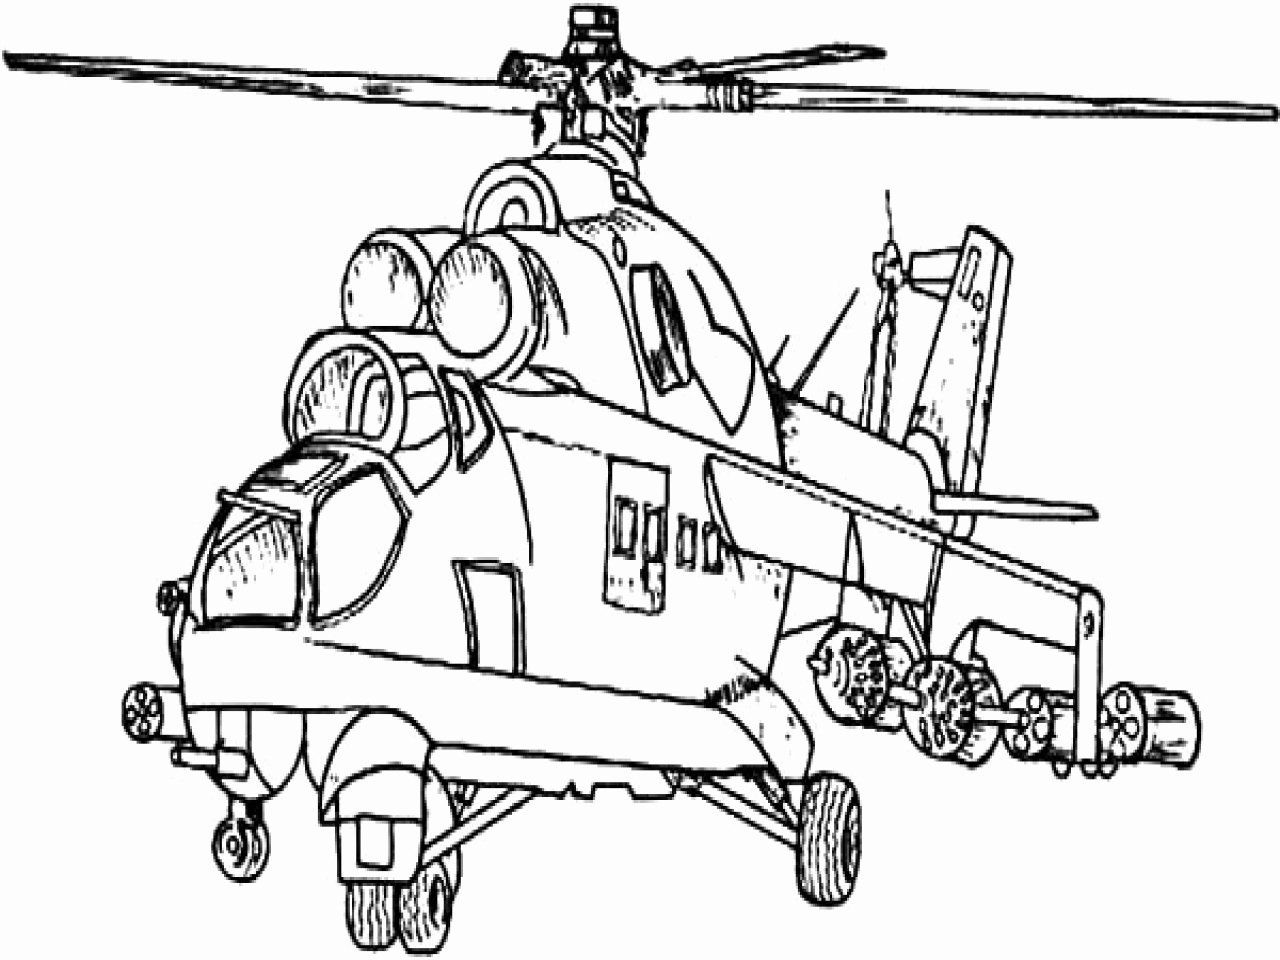 Military Coloring Pages For Adults Beautiful Helicopters Coloring Pages Airplane Coloring Pages Truck Coloring Pages Coloring Pages [ 960 x 1280 Pixel ]